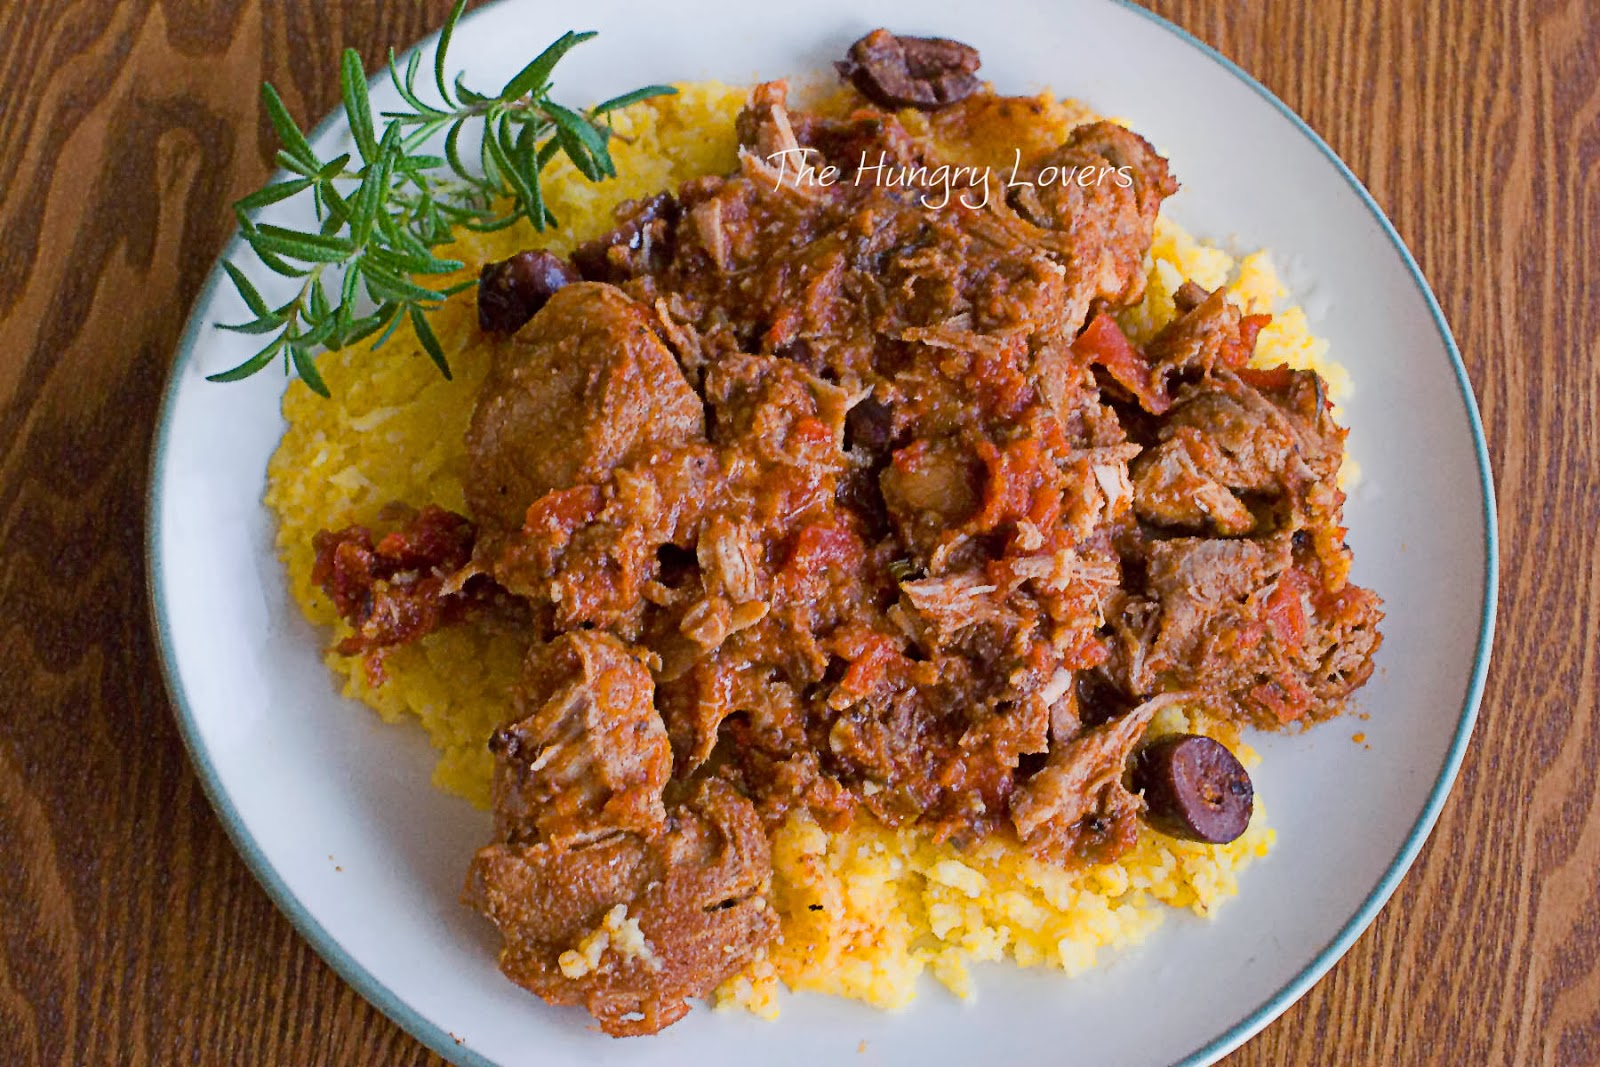 Rosemary and Olive Braised Pork Ribs with Polenta